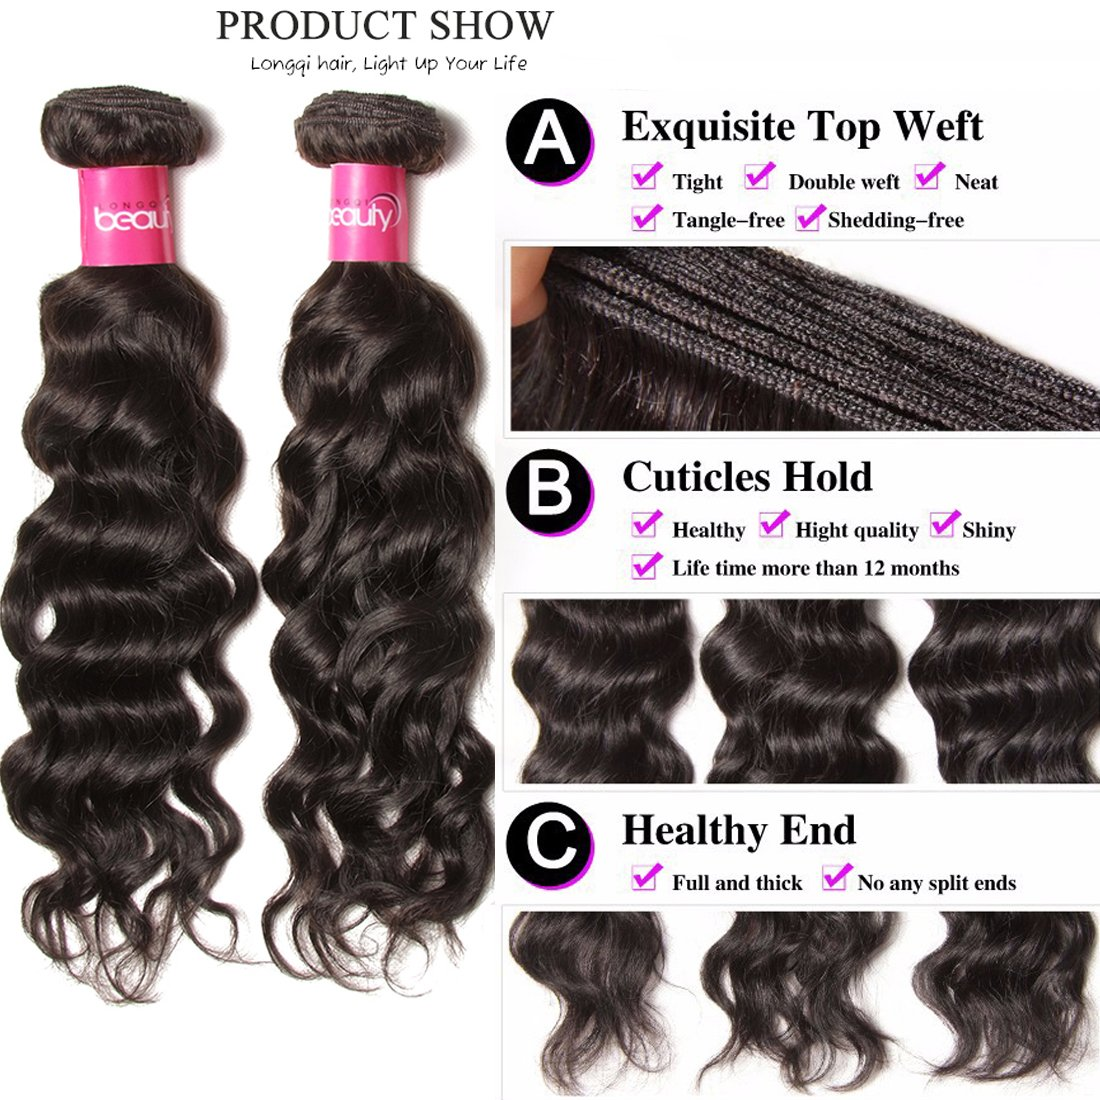 Longqi 7a Unprocessed Virgin Hair Brazilian Natural Wave Bundles Pack of 3 Cheap Wavy Human Hair Bundles Deal (18 20 22inch, Natural Color) by Dinoce (Image #3)